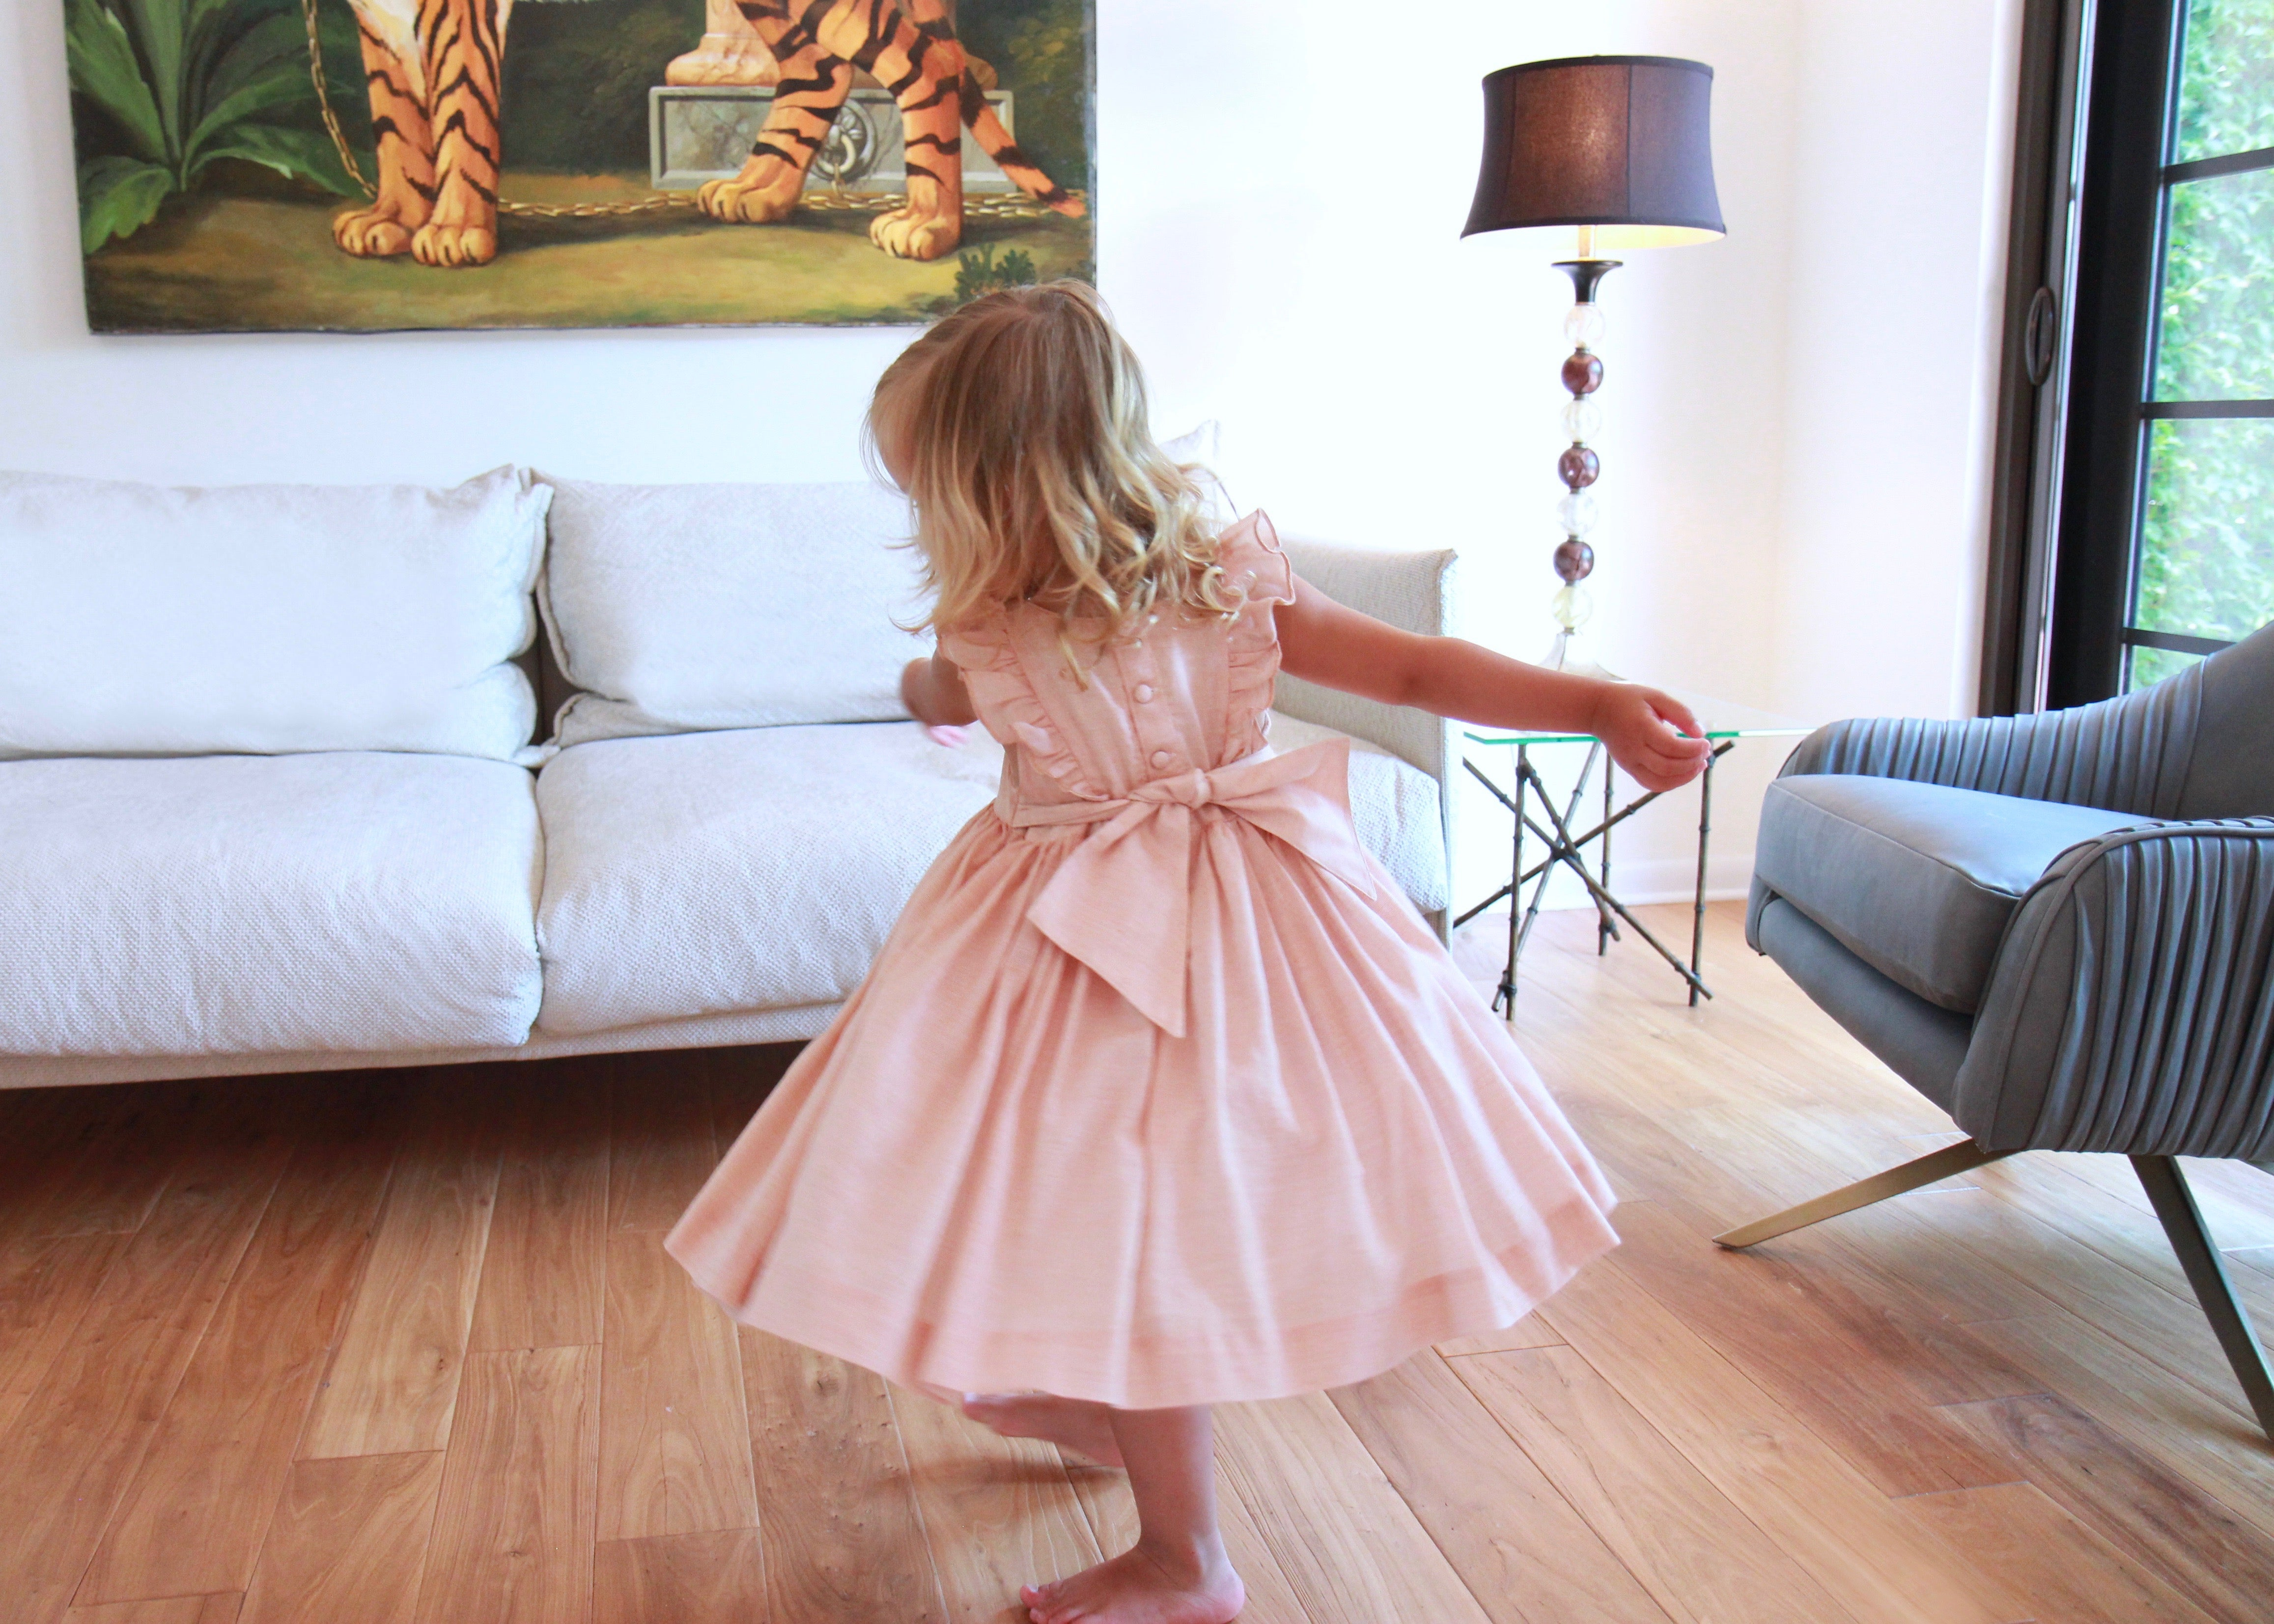 Netti smocked dress twirl Charlotte sy Dimby children blog article